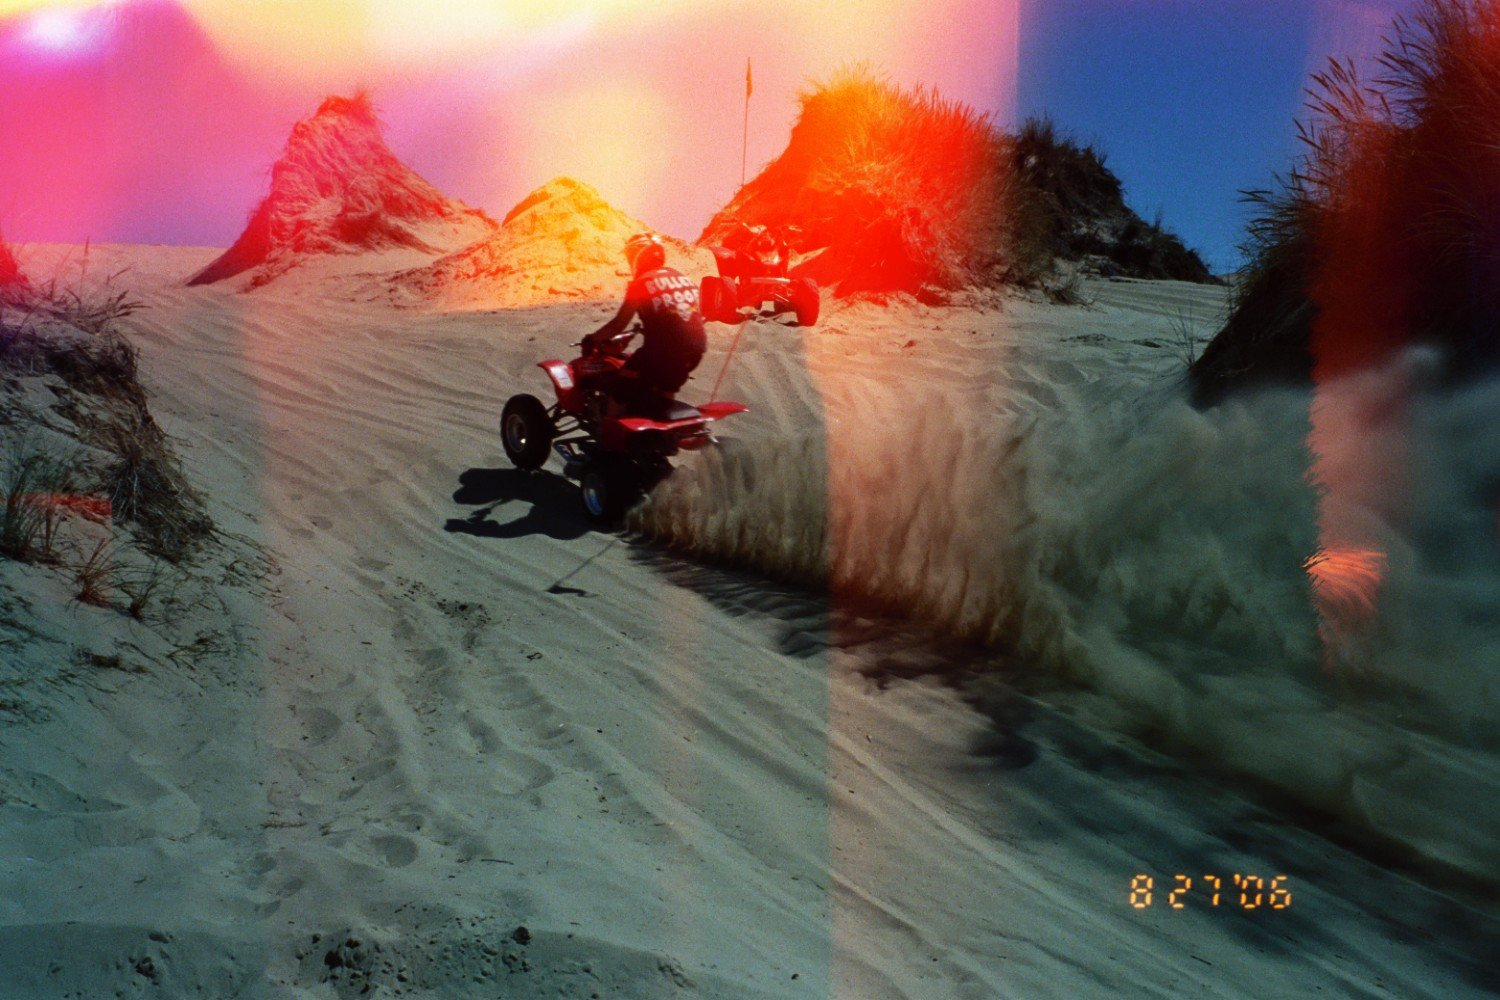 crappy pic of me roostin' up the hill